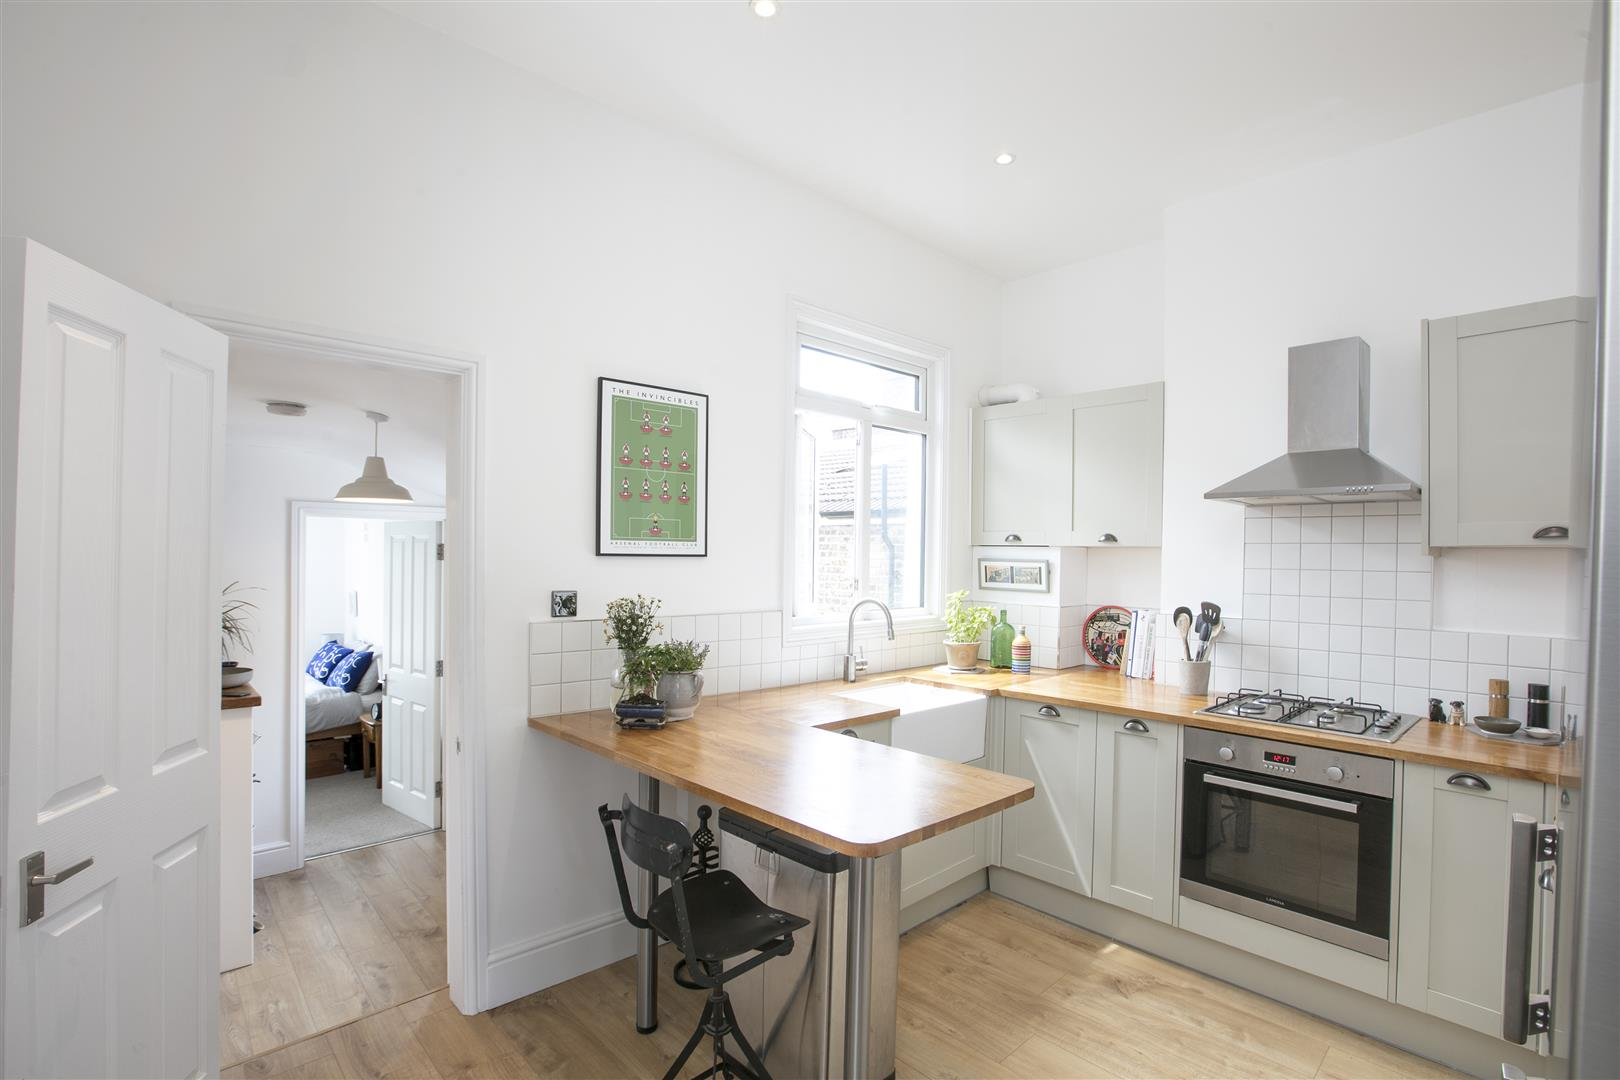 Flat - Conversion Sale Agreed in Drakefell Road, Brockley, SE4 640 view2